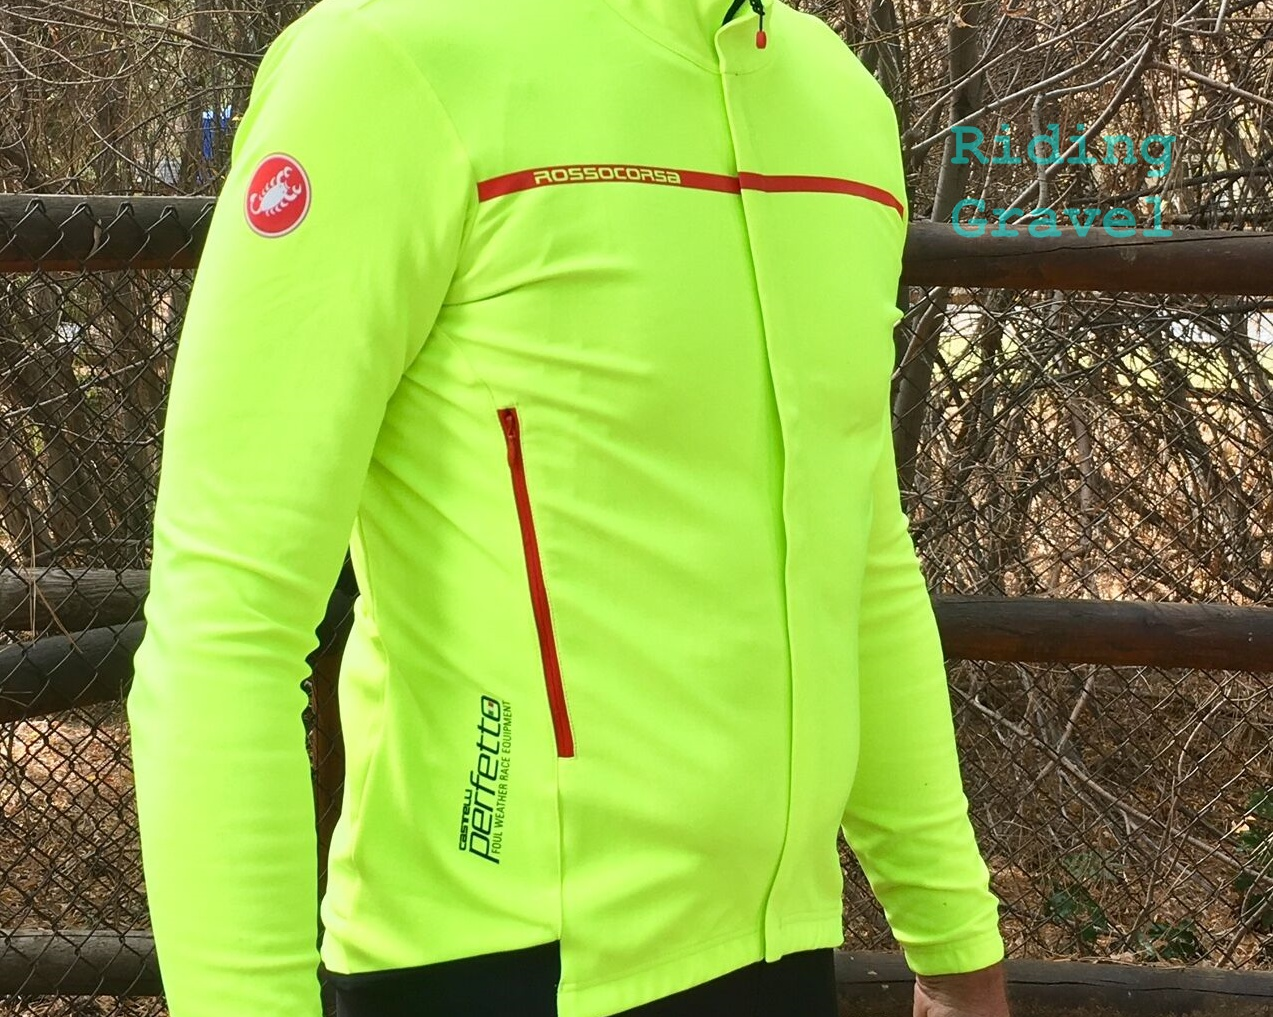 So Cal Clothing >> Castelli Winter Clothing: Winter Wear Review - Riding Gravel